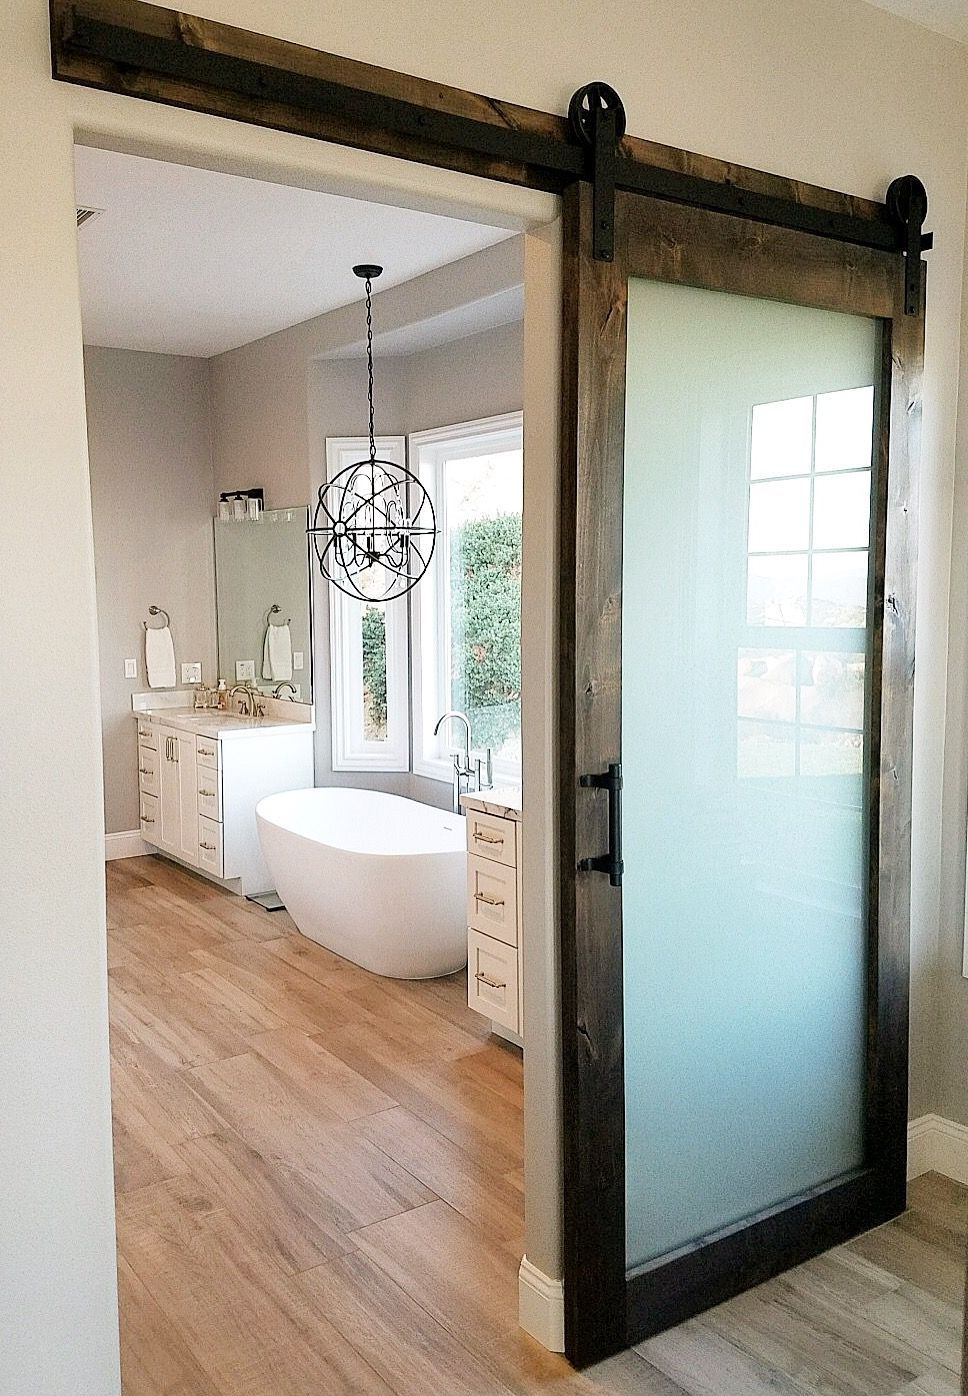 Barn Door Bedroom Glass In 2020 Bathroom Barn Door Sliding Barn Door Lock Barn Style Interior Doors